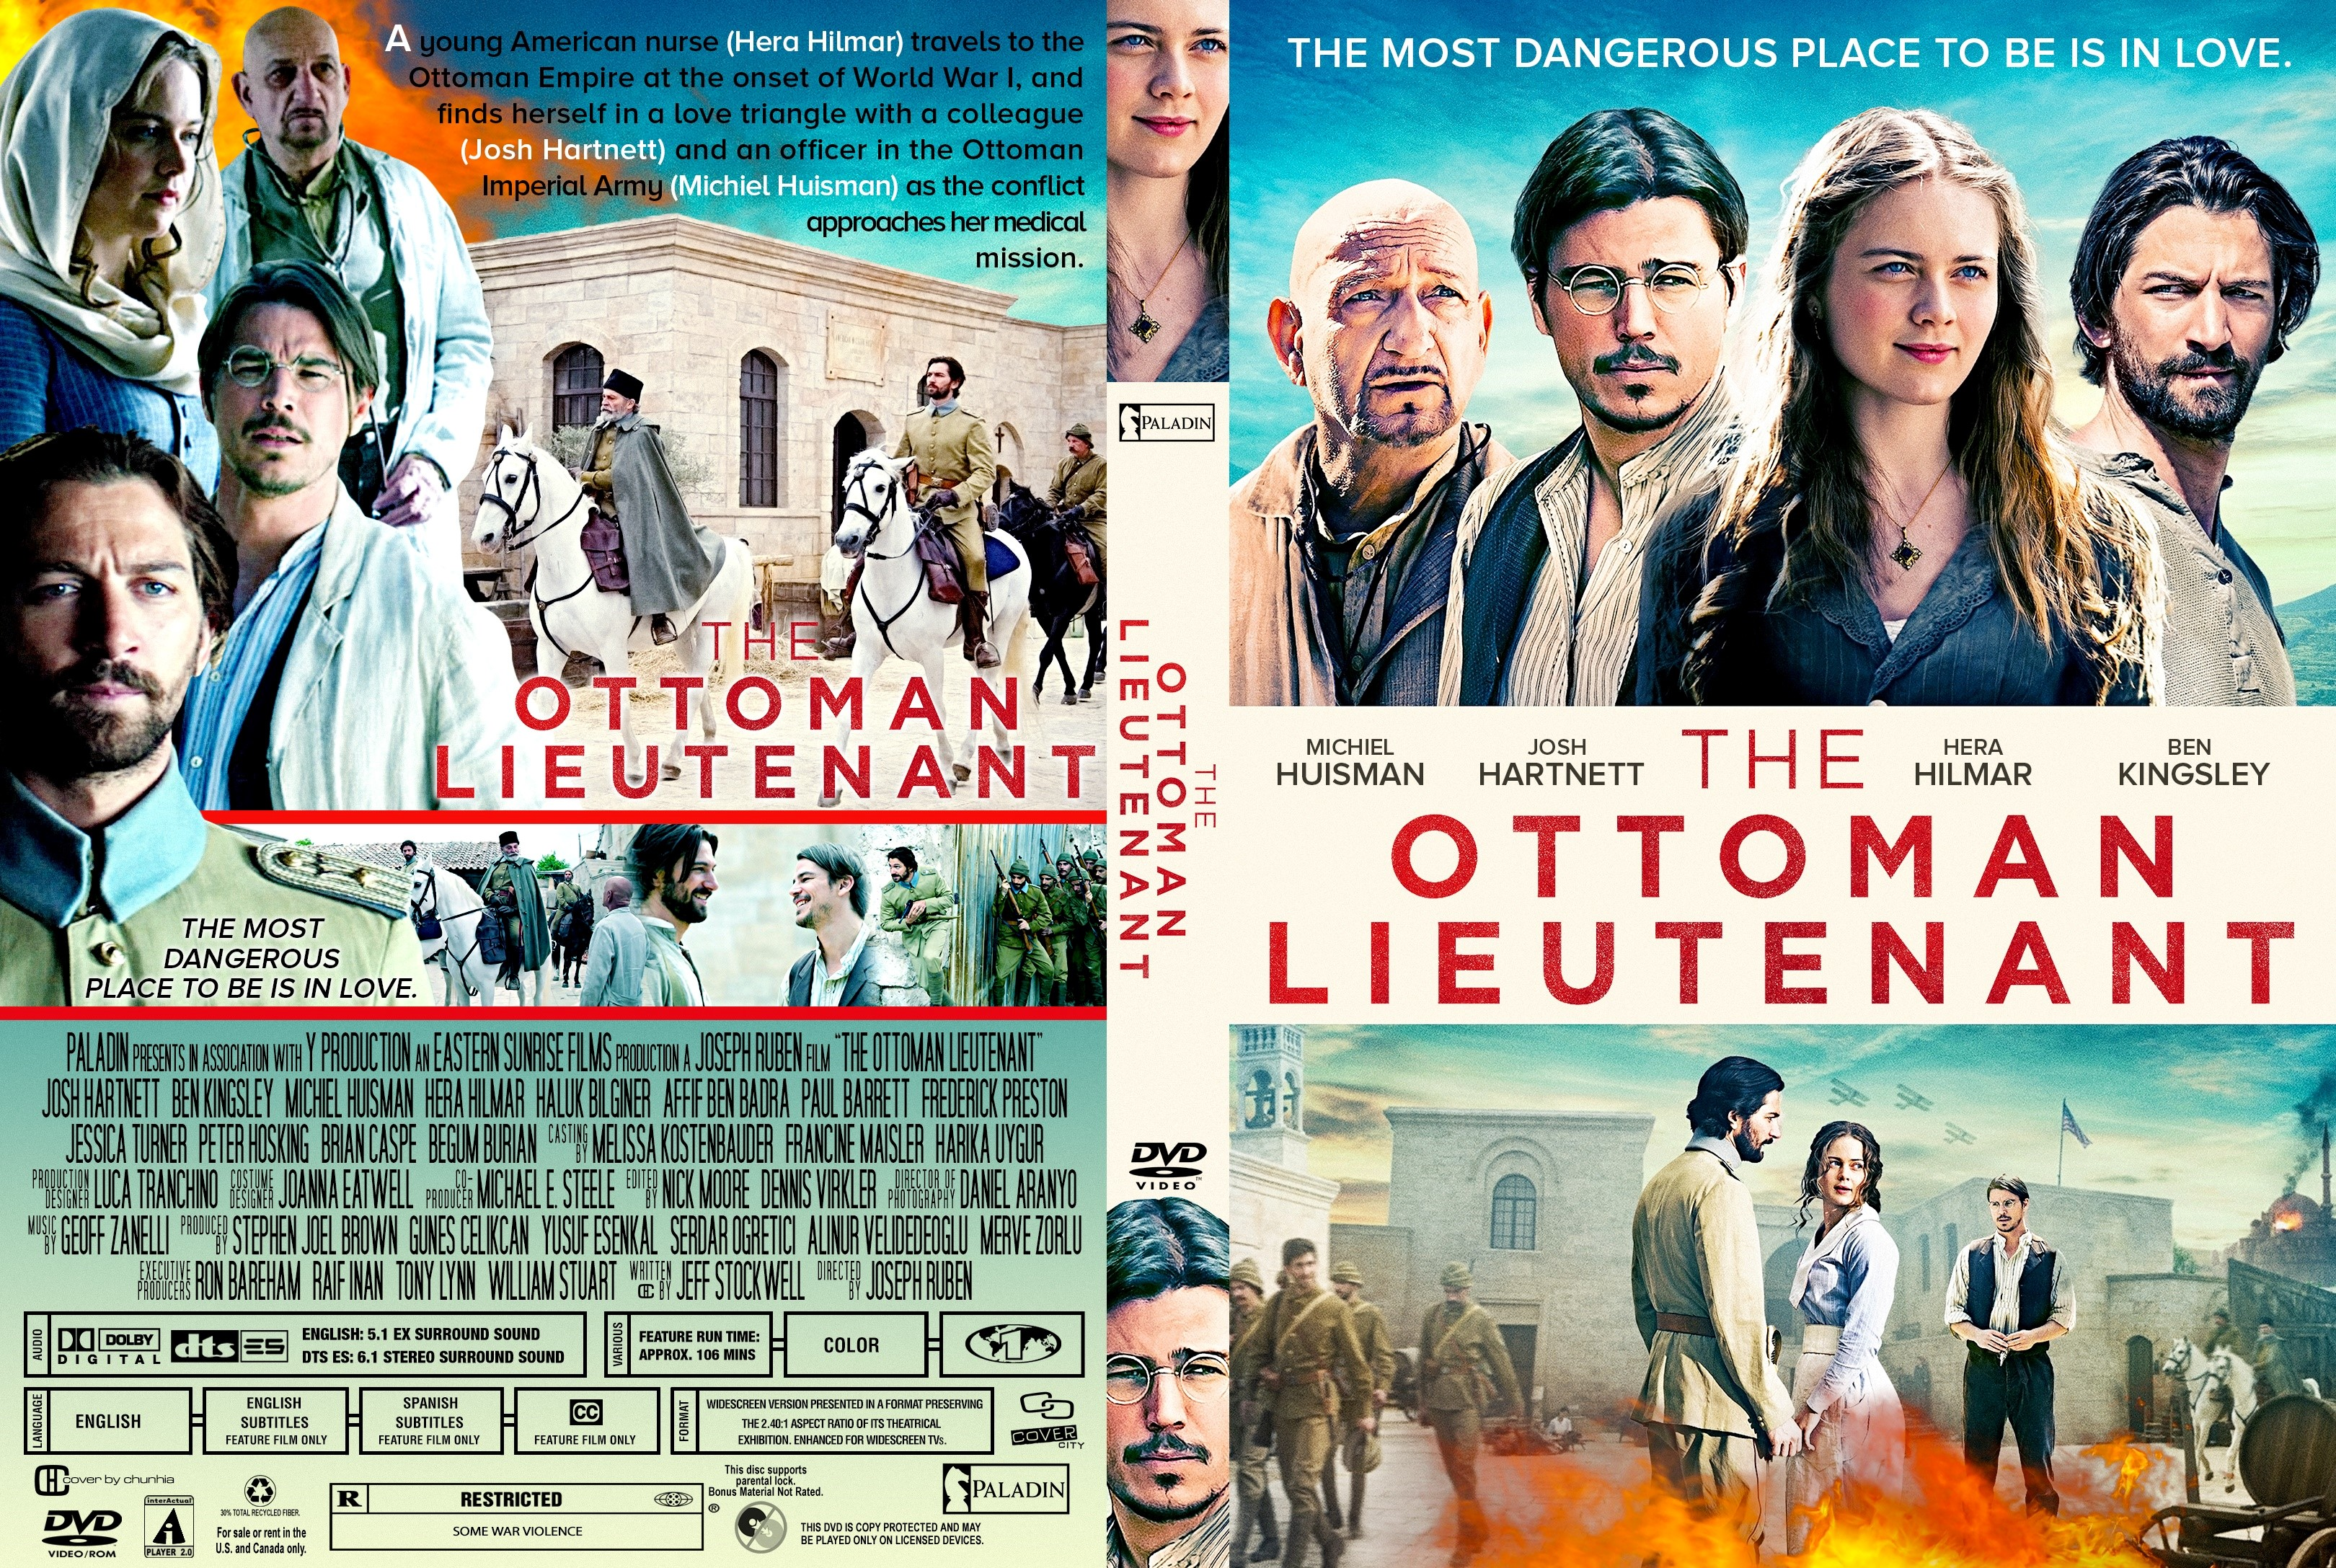 The Ottoman Lieutenant DVD Cover  Cover Addict  DVD and